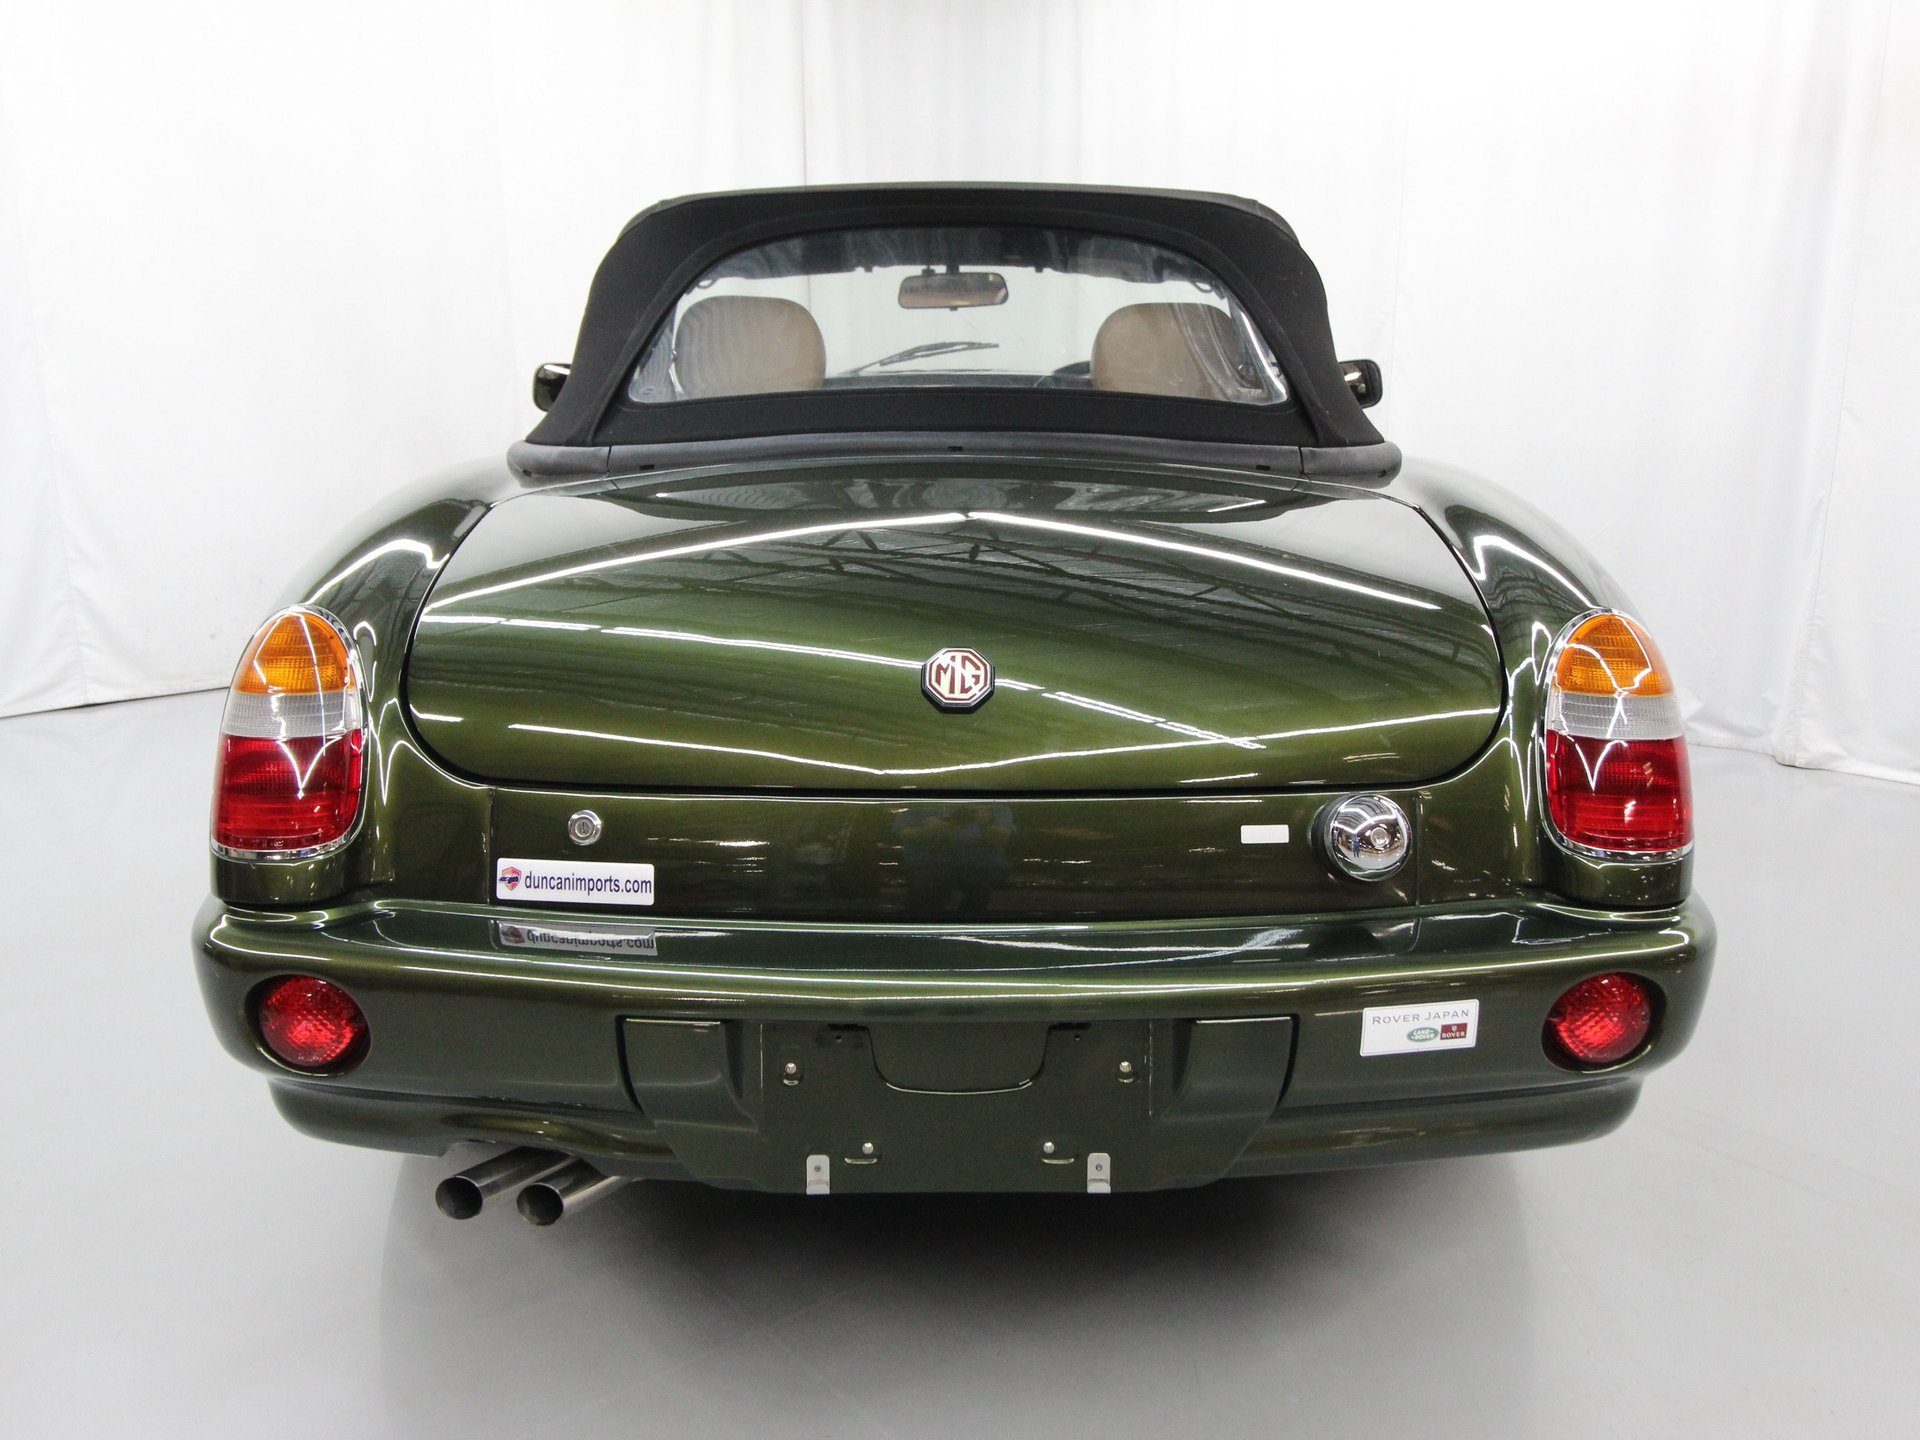 1994 Rover MG RV8